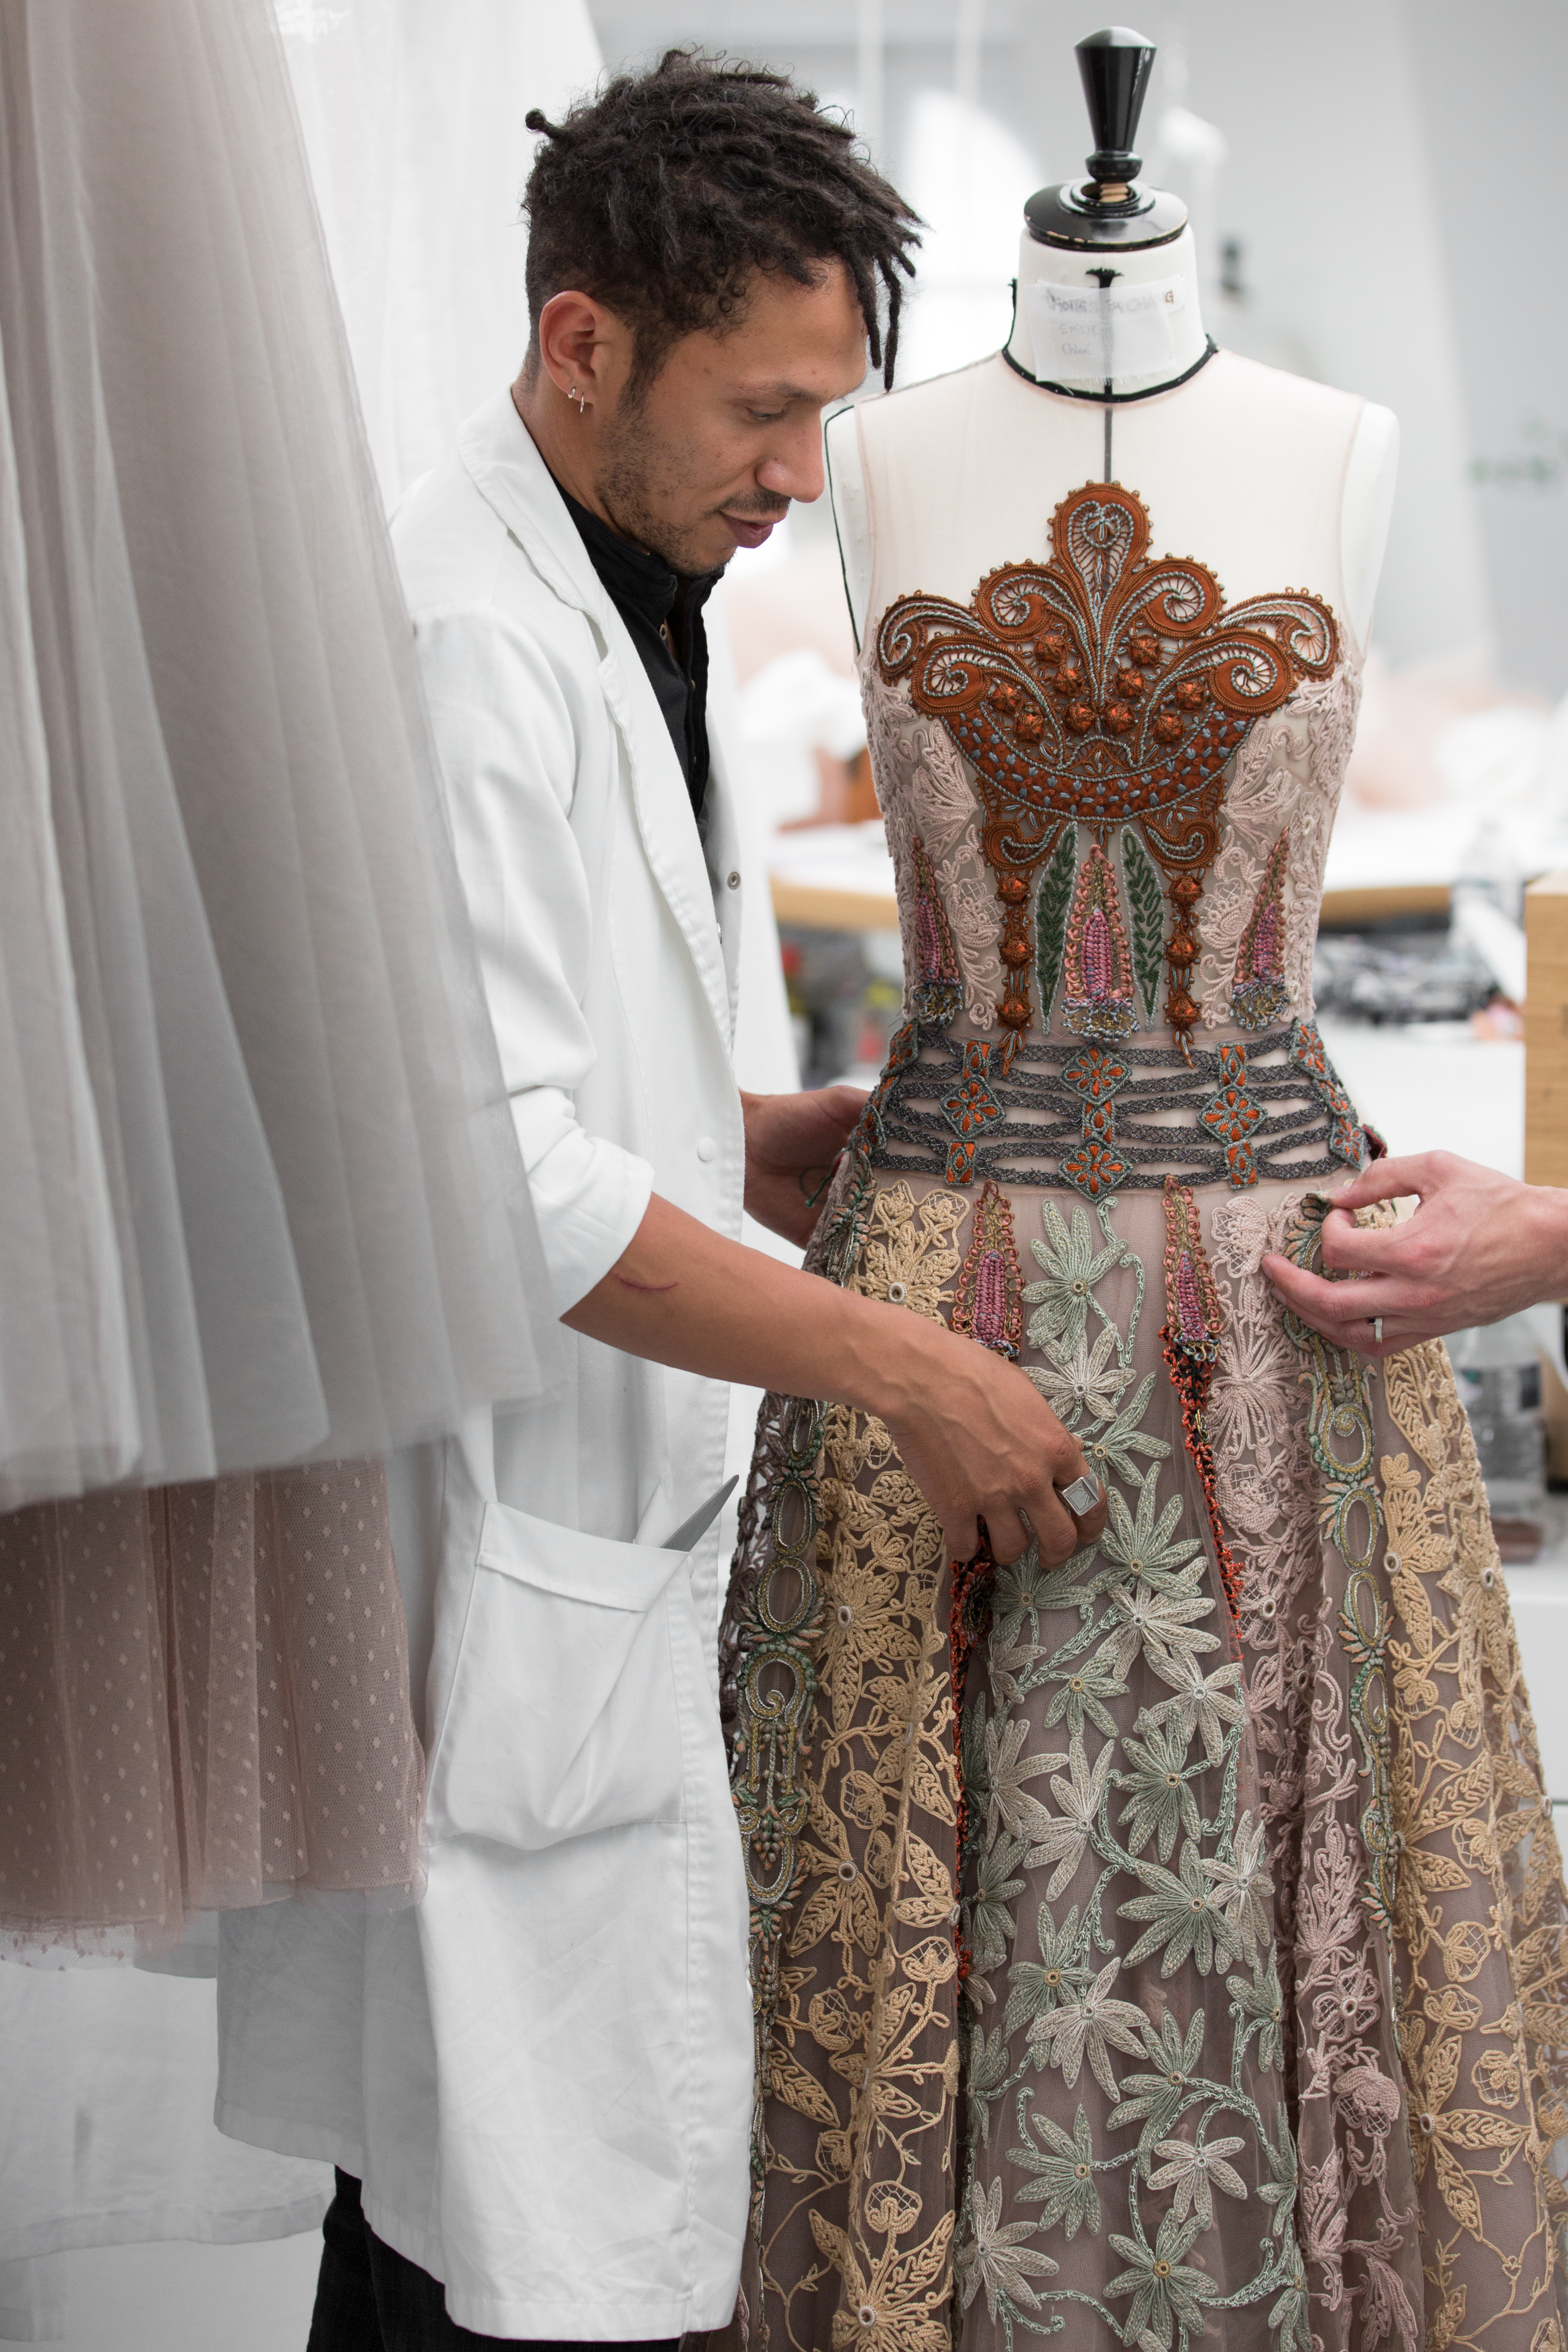 Inside the Dior atelier, image courtesy of Dior